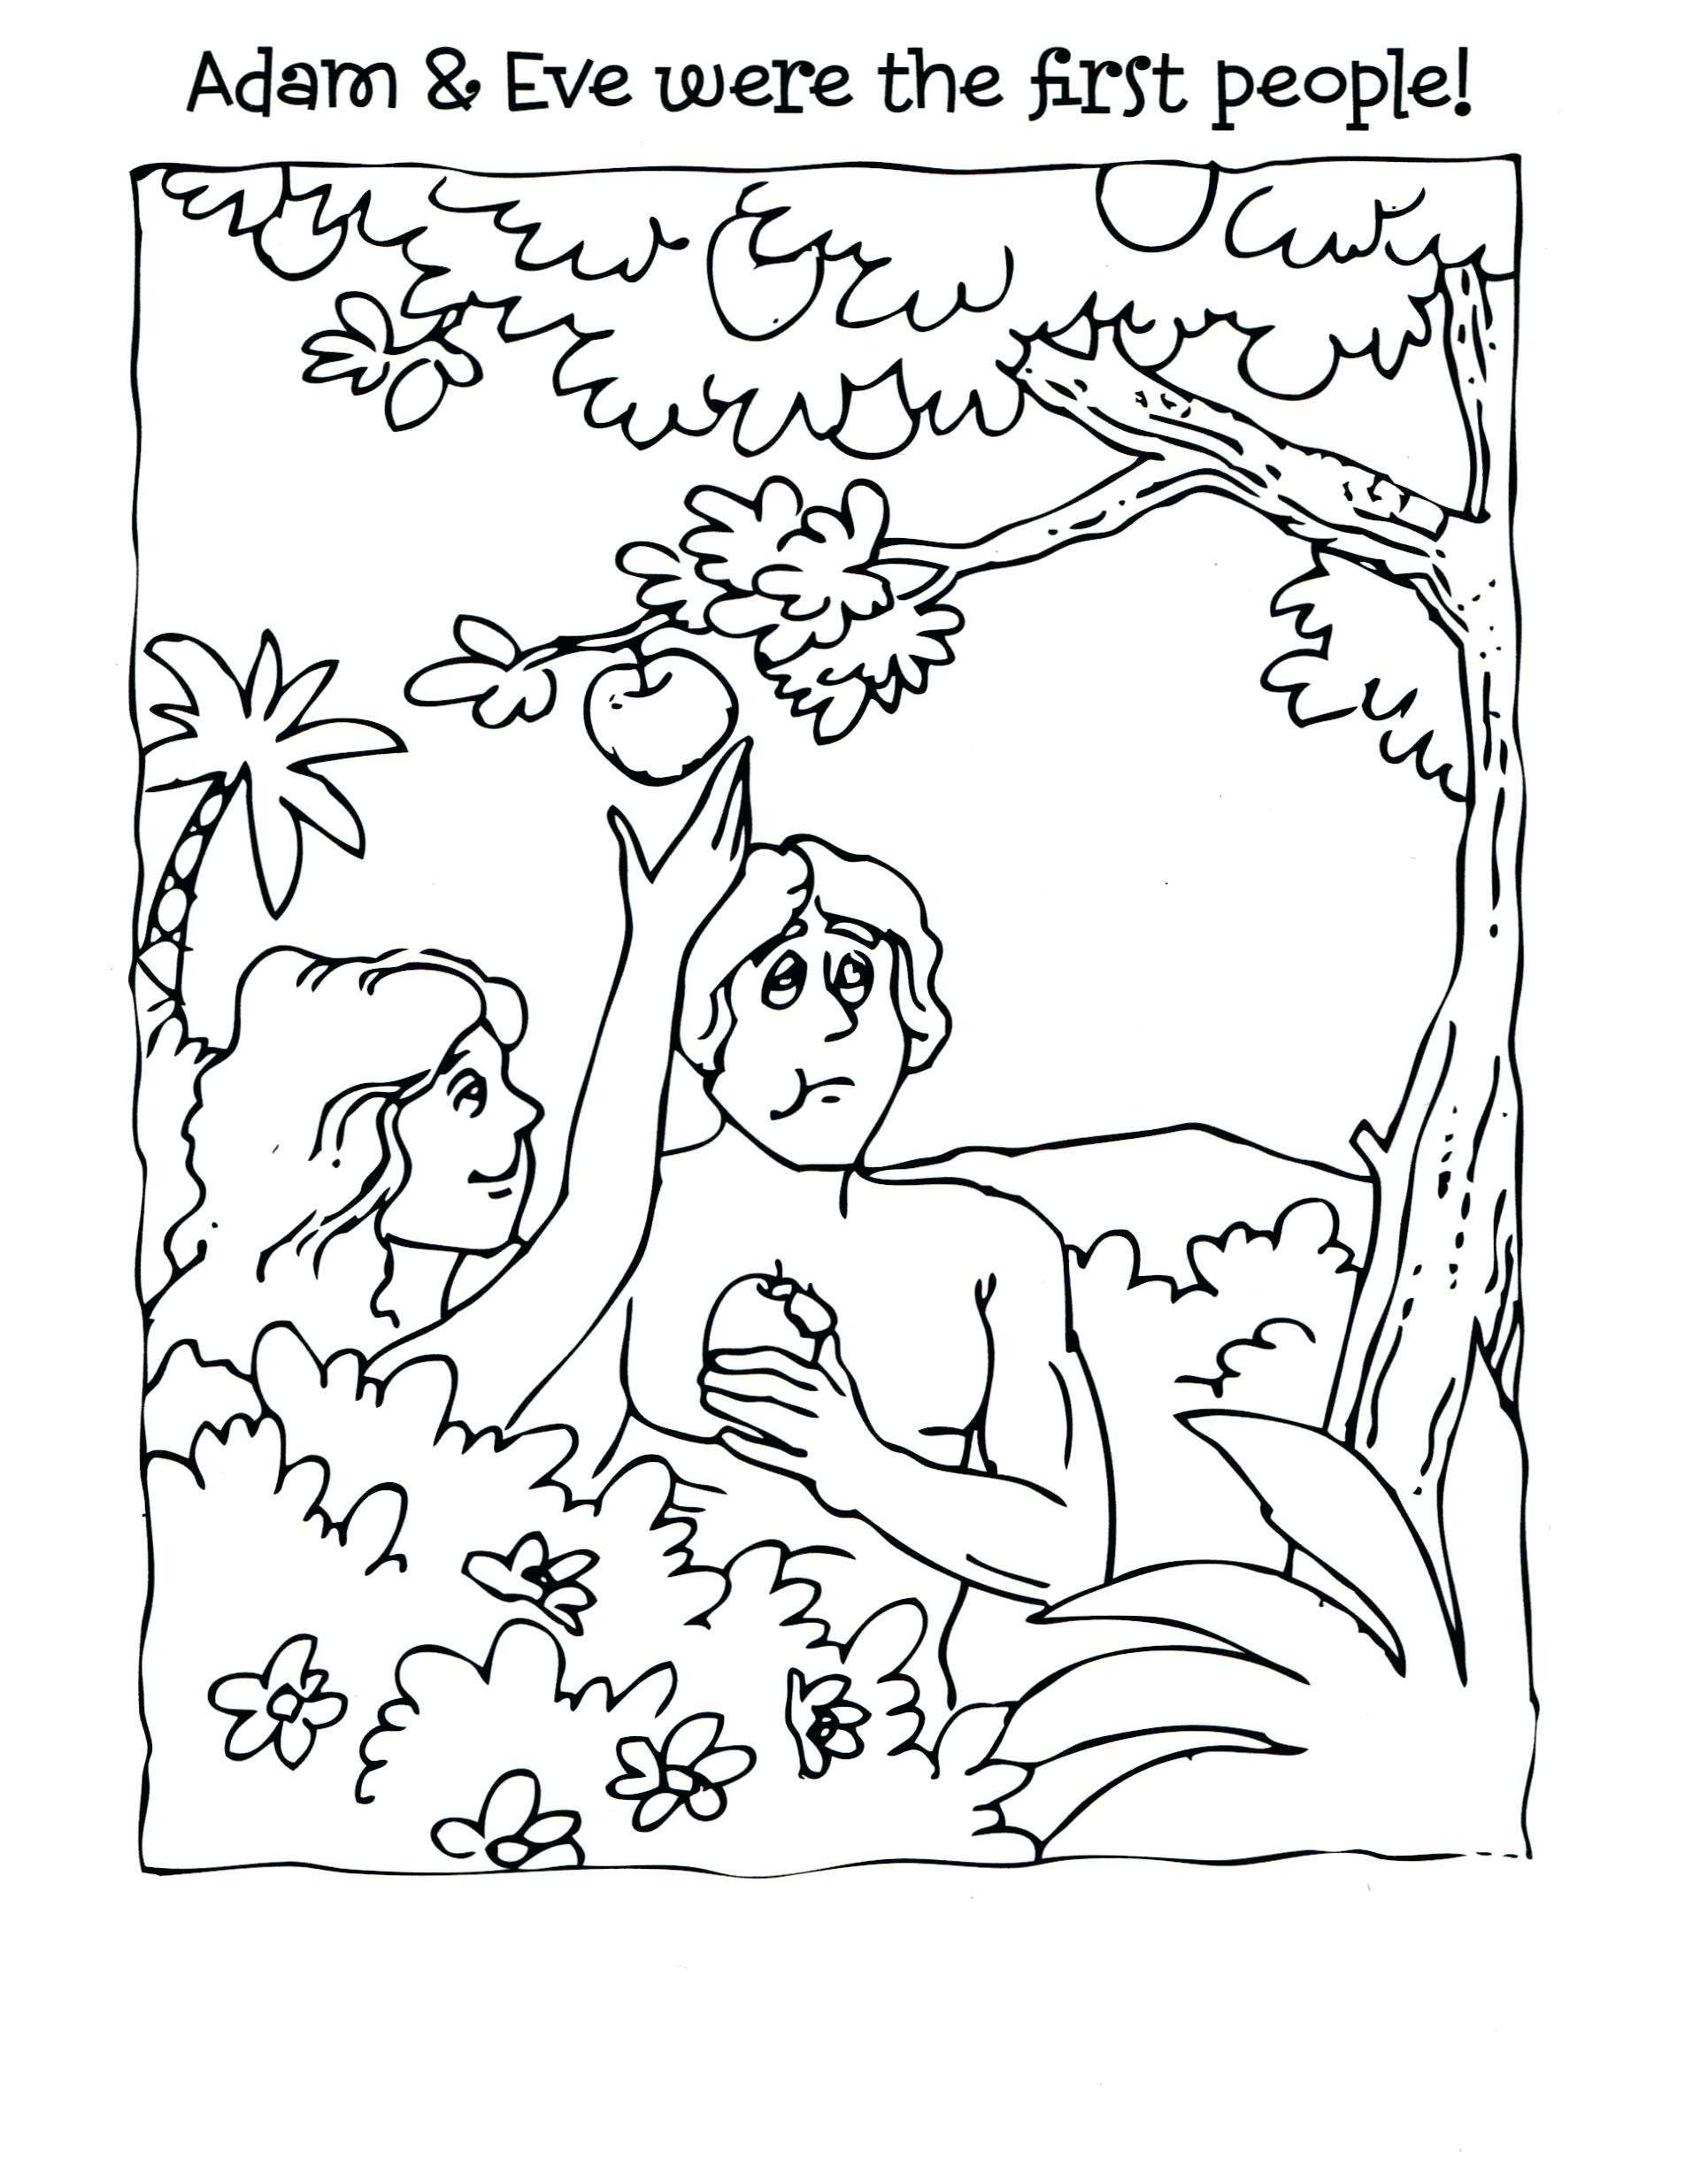 adam and eve coloring pages printable Download-Adam and Eve Coloring Pages for Kids Free Adam and Eve Coloring Pages Lovely Adam and 14-b